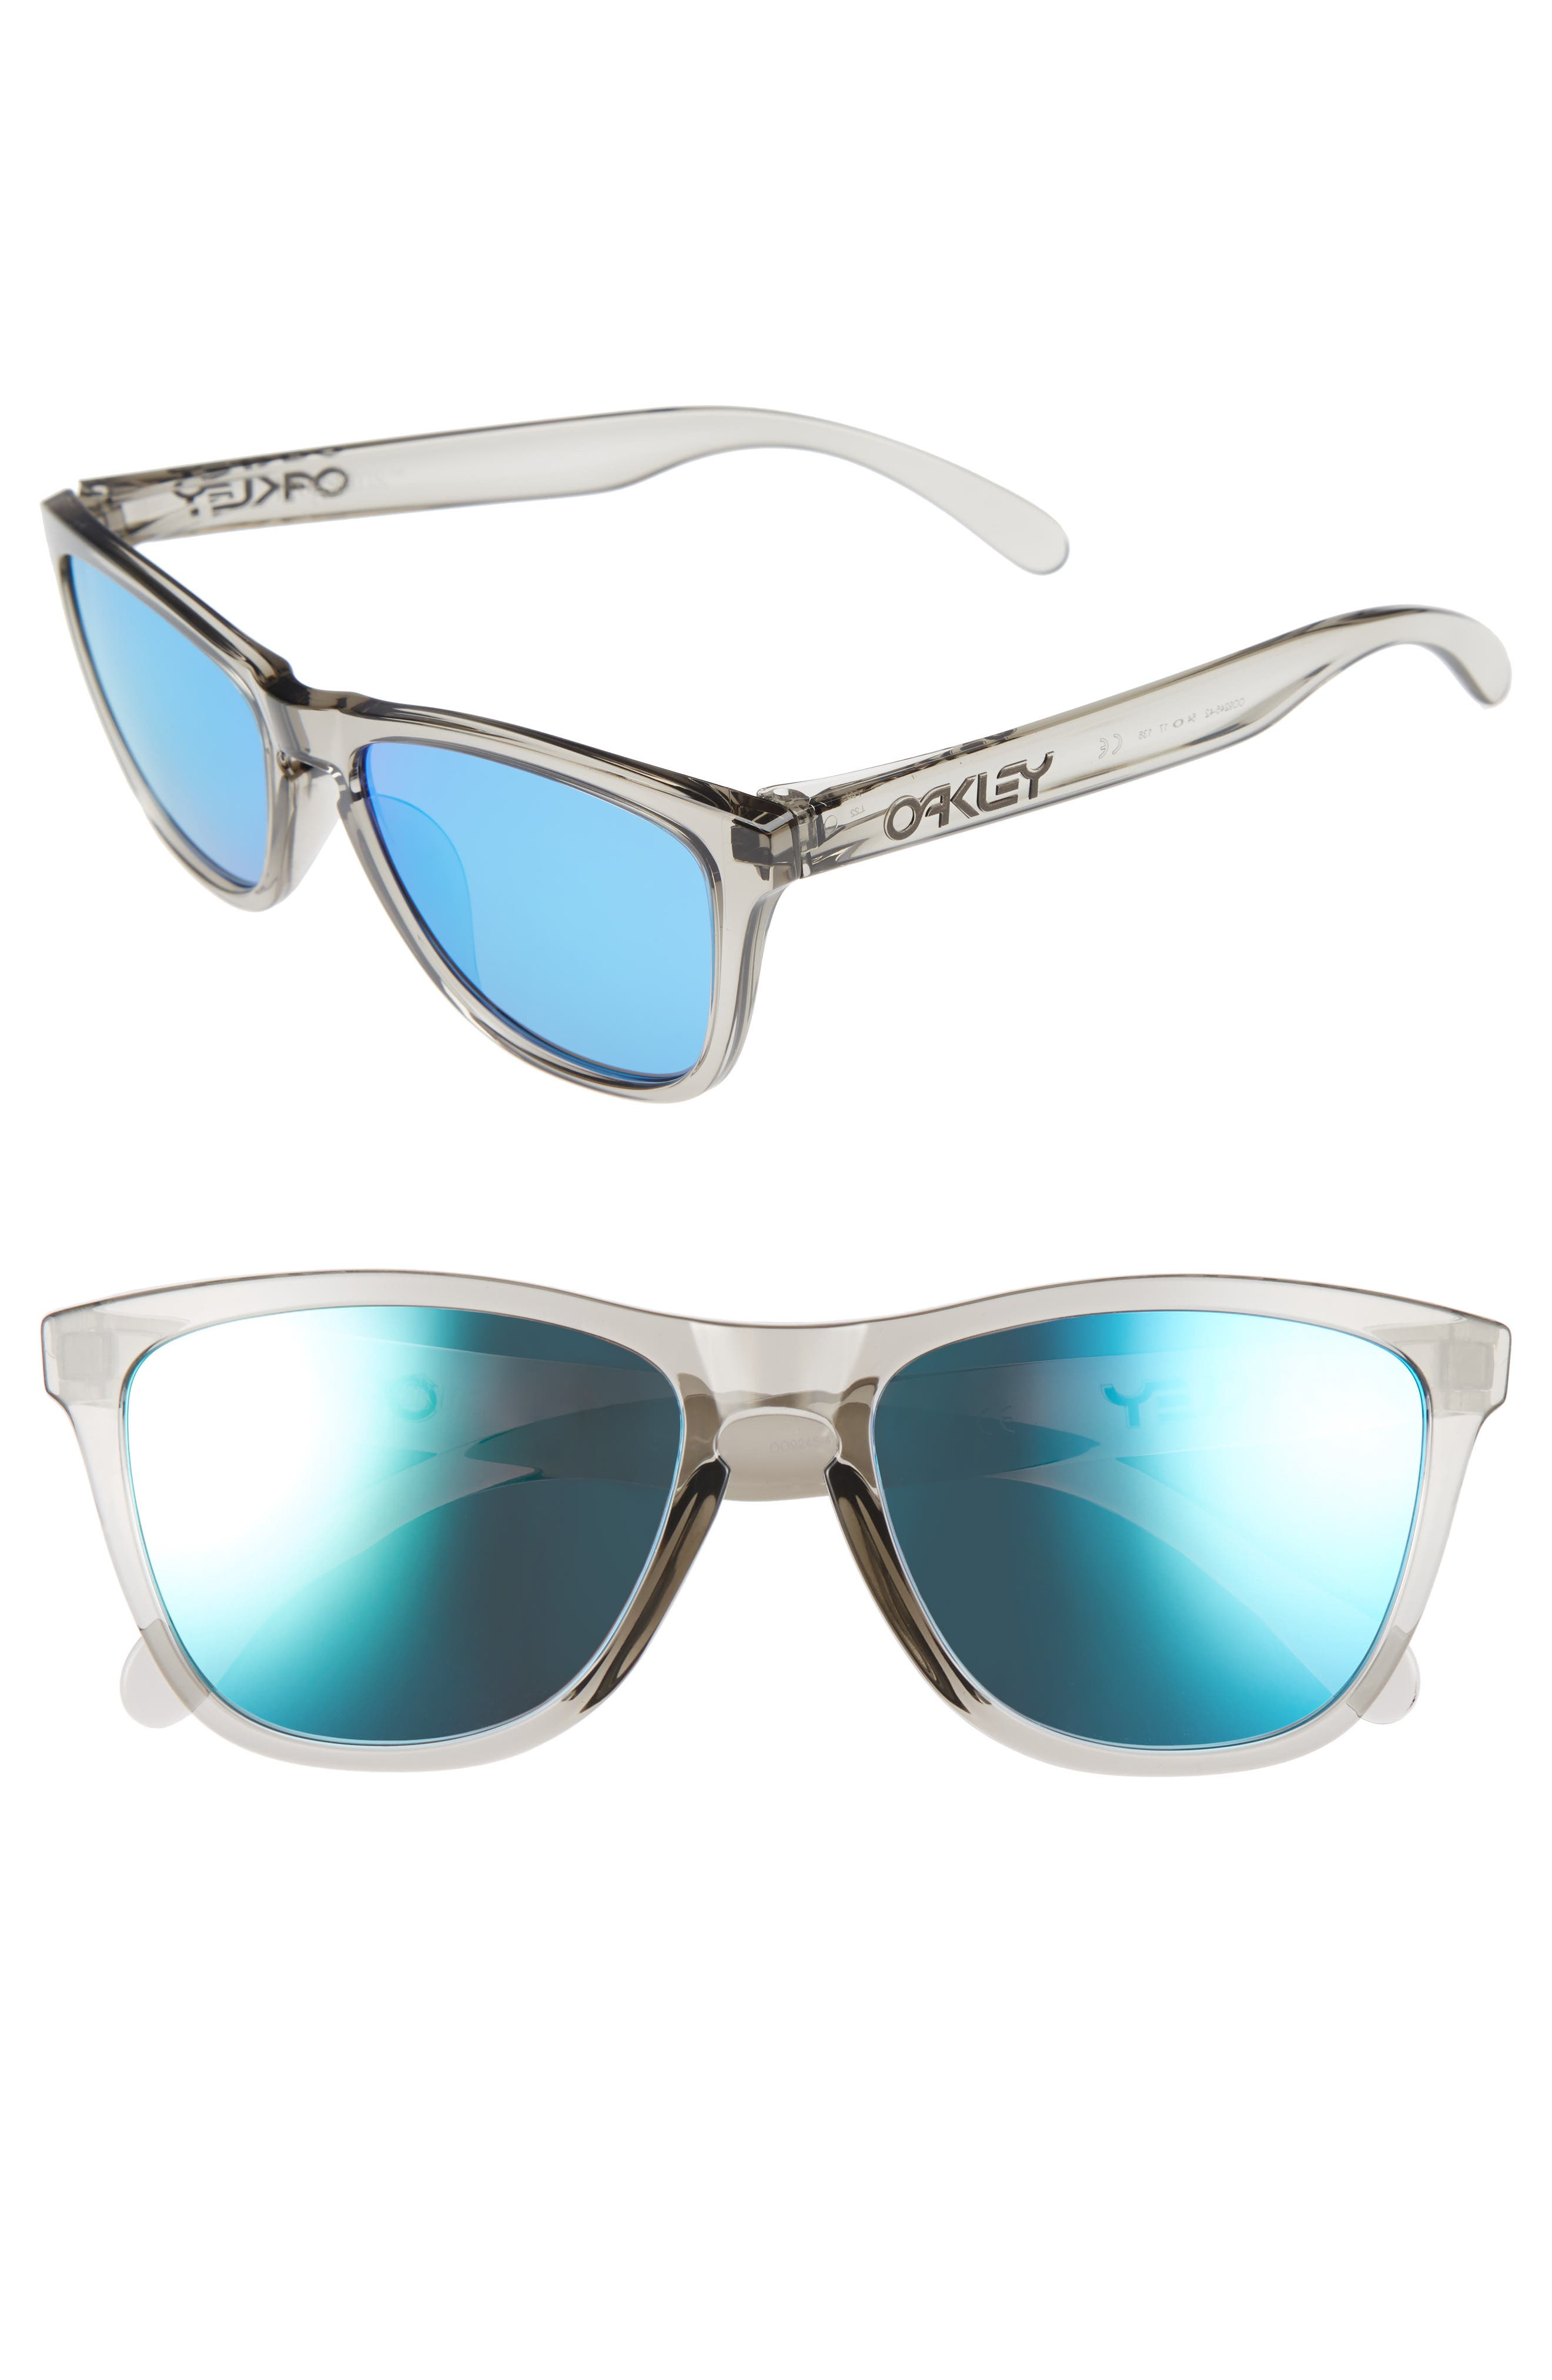 Main Image - Oakley Frogskins® 54mm Sunglasses